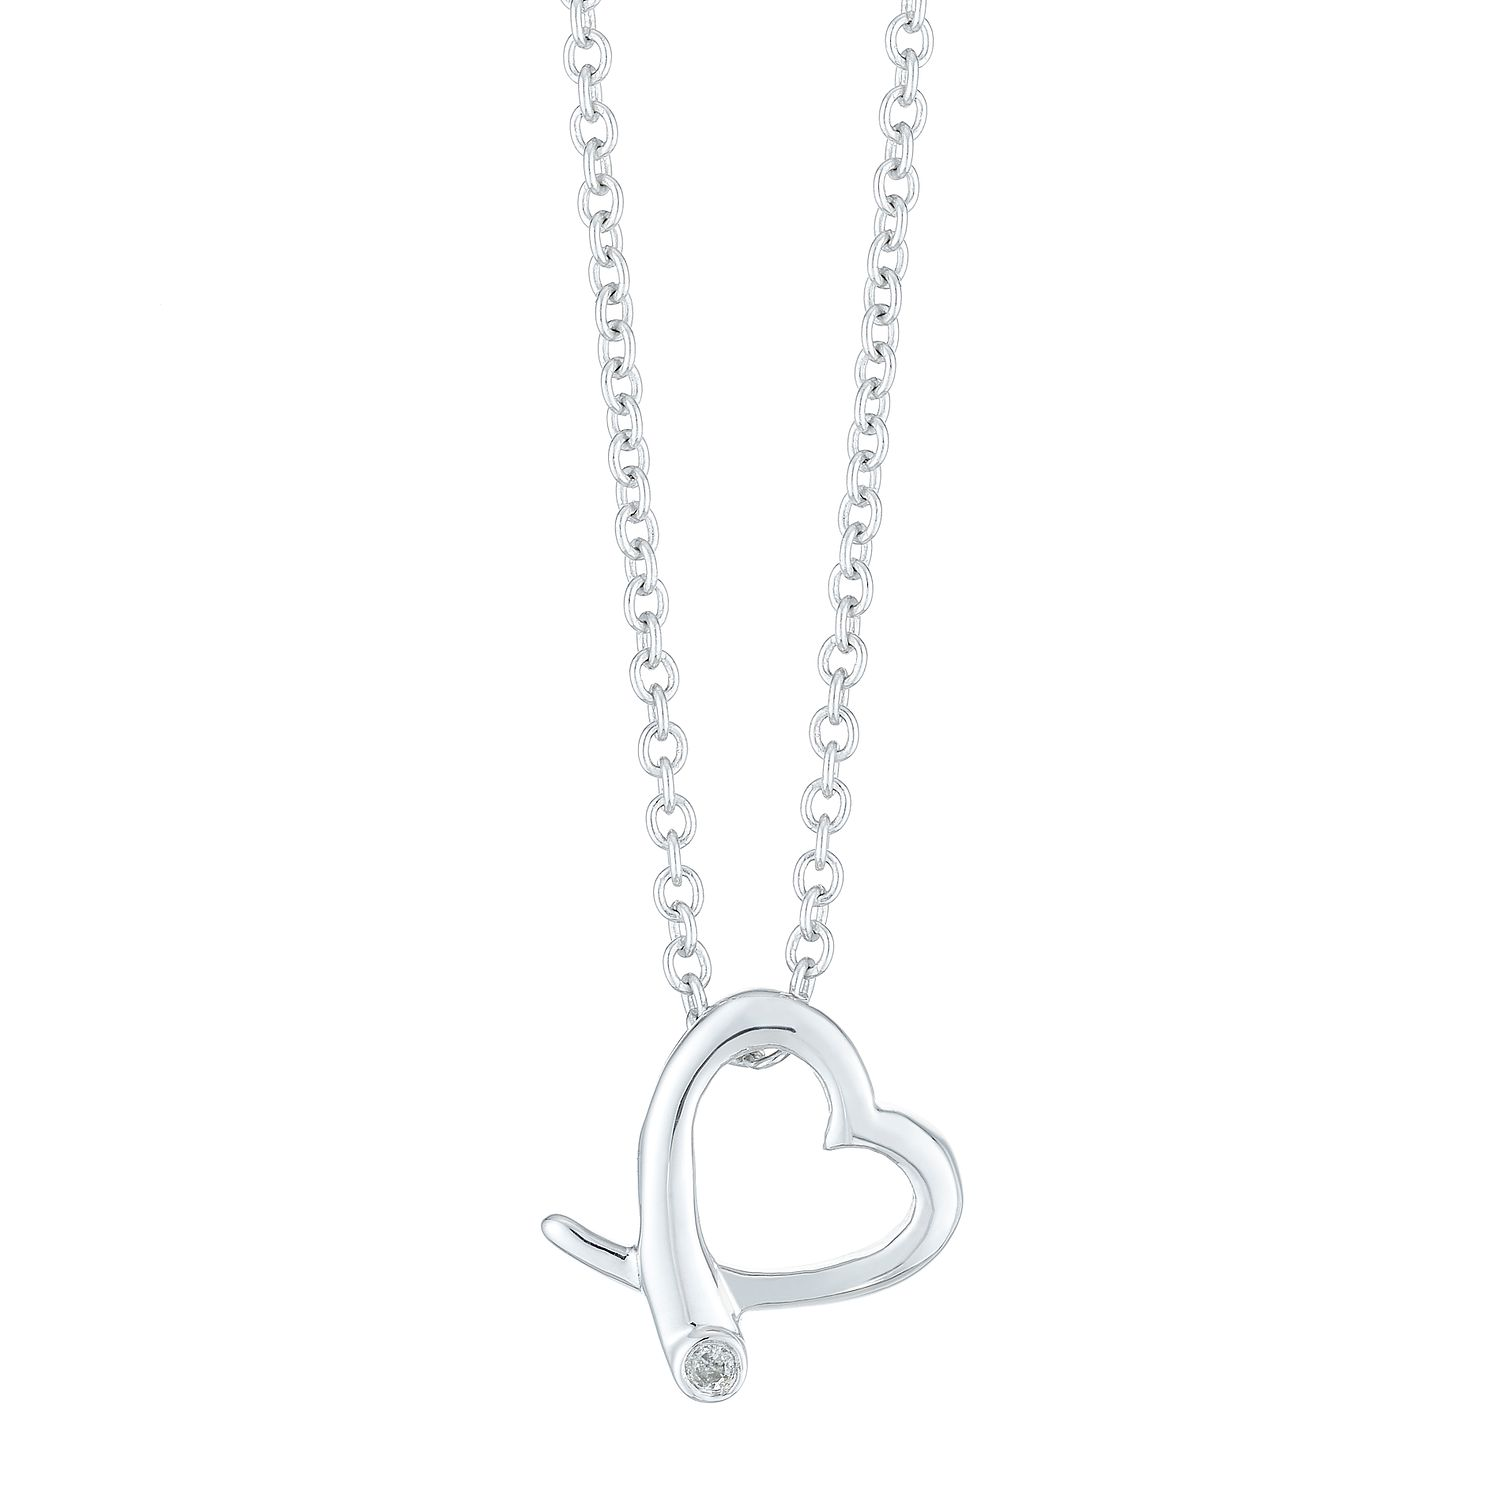 Silver Rhodium Diamond Set Heart Shaped Juliette Necklet - Product number 4233700